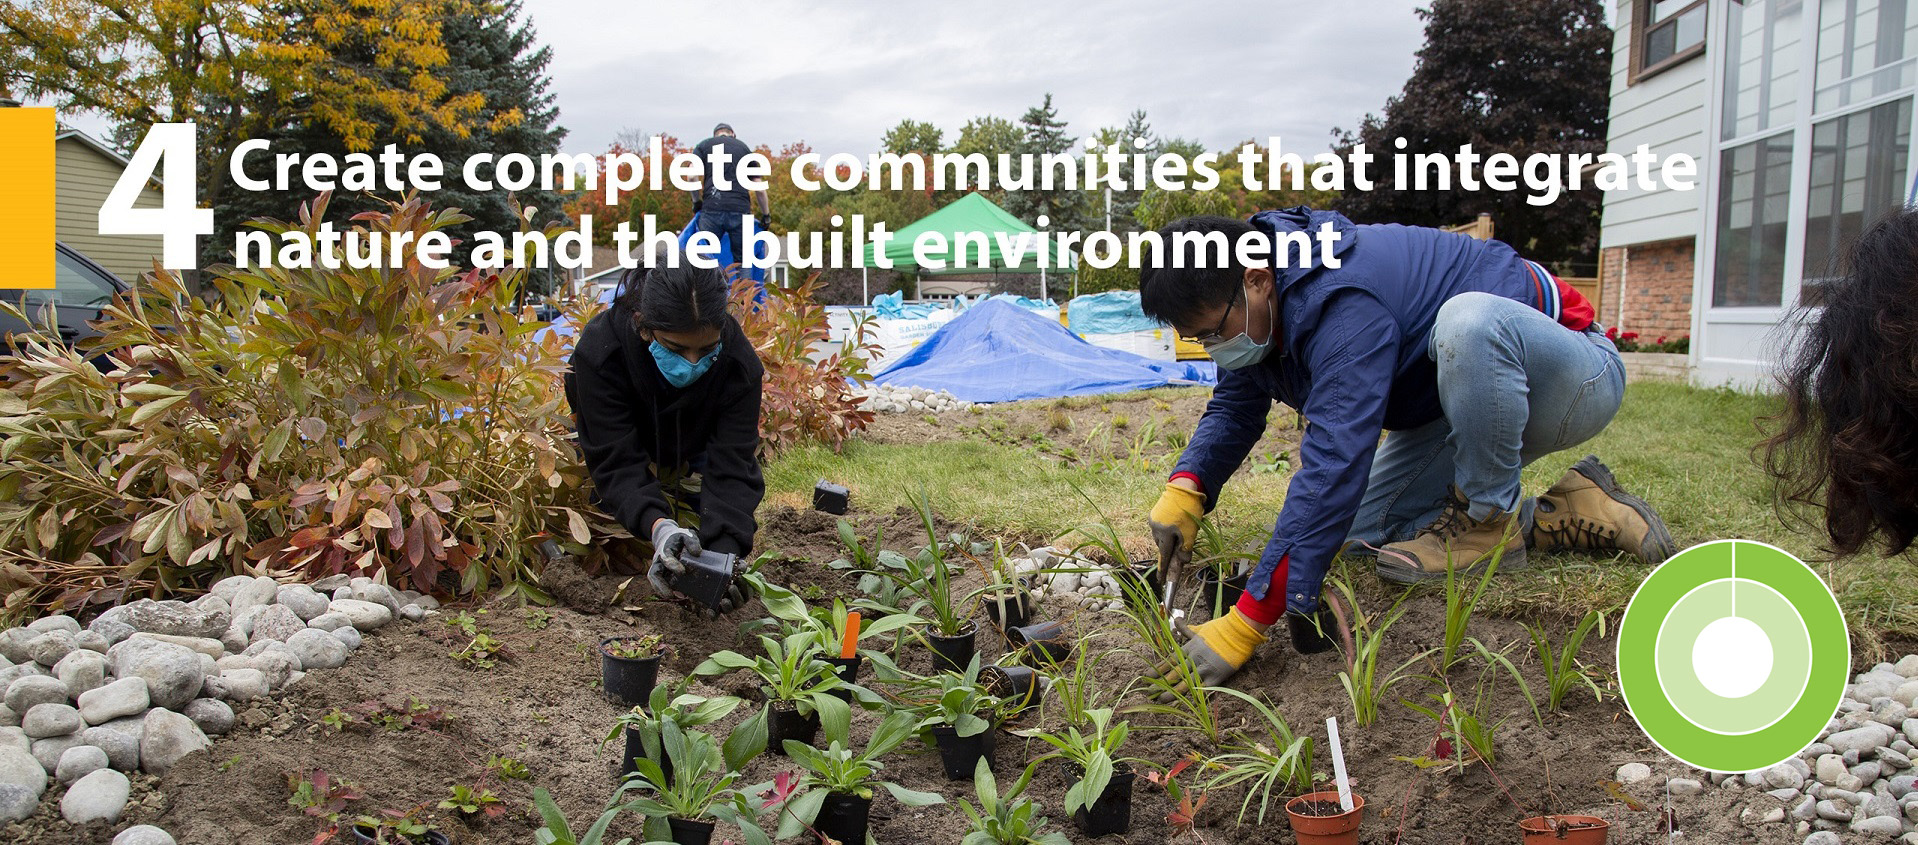 TRCA Strategic Goal 4 Create complete communities that integrate nature and the built environment